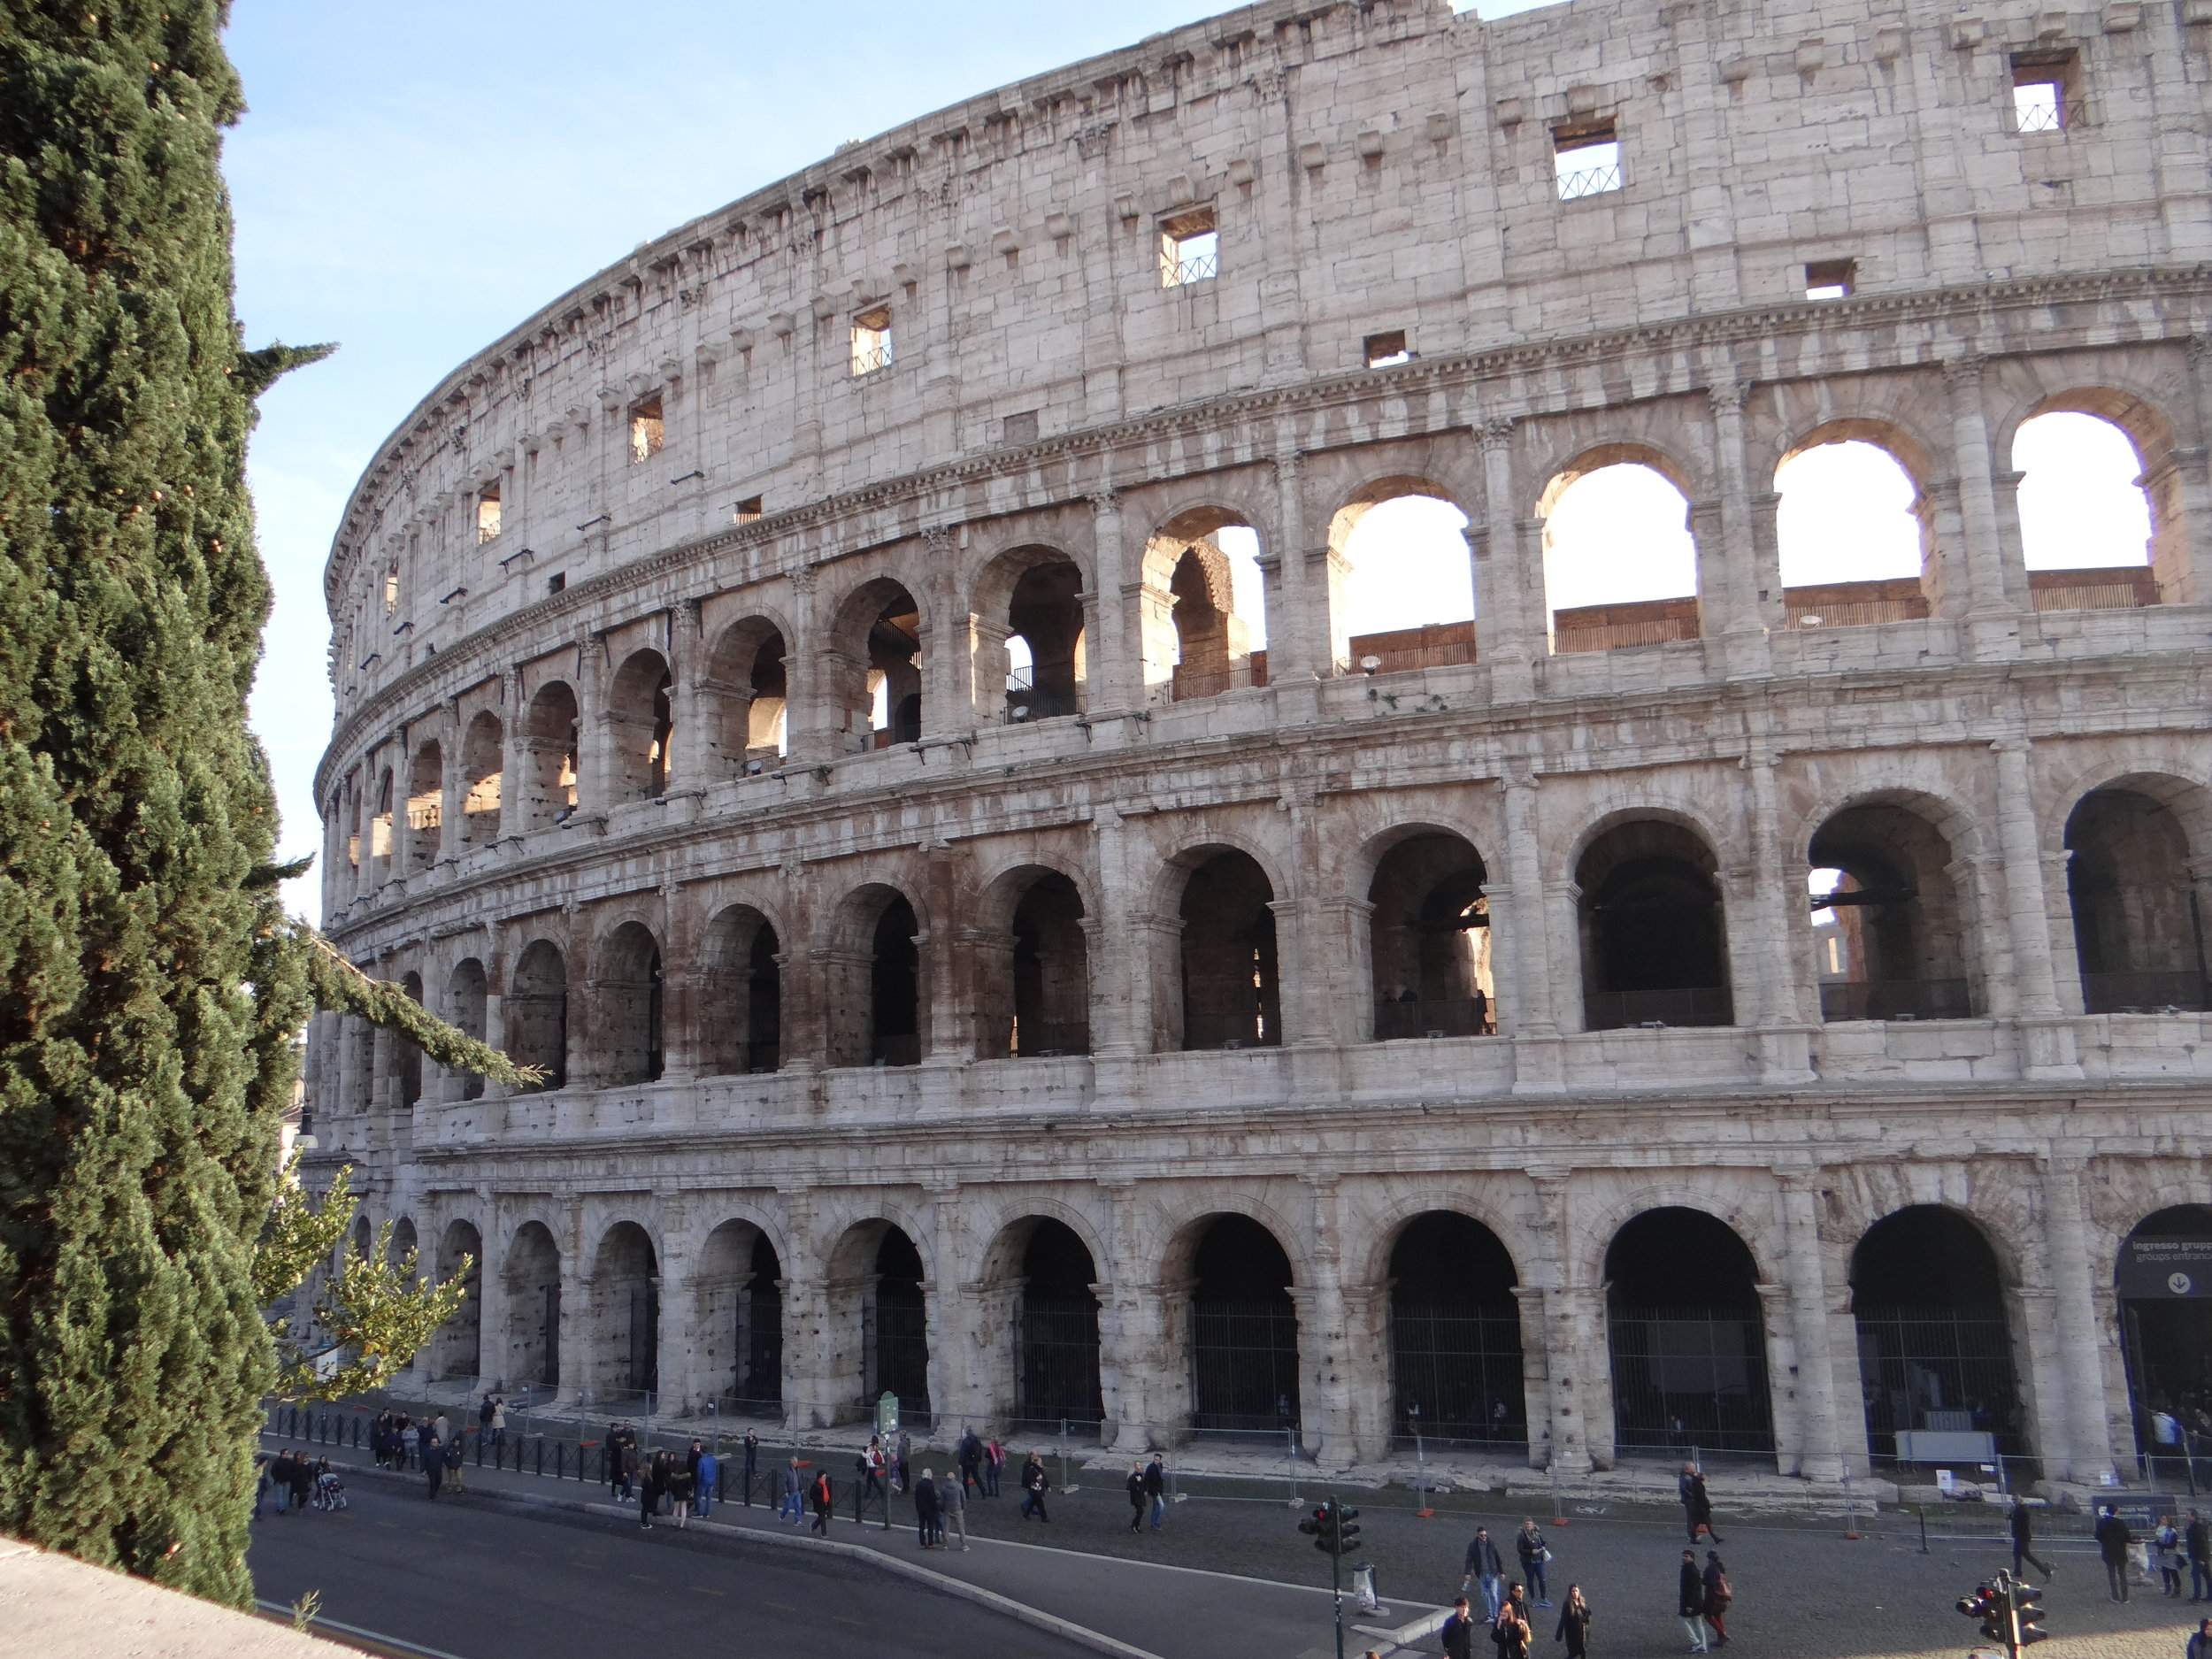 Oh hey there, Colosseum. This is well known, right??